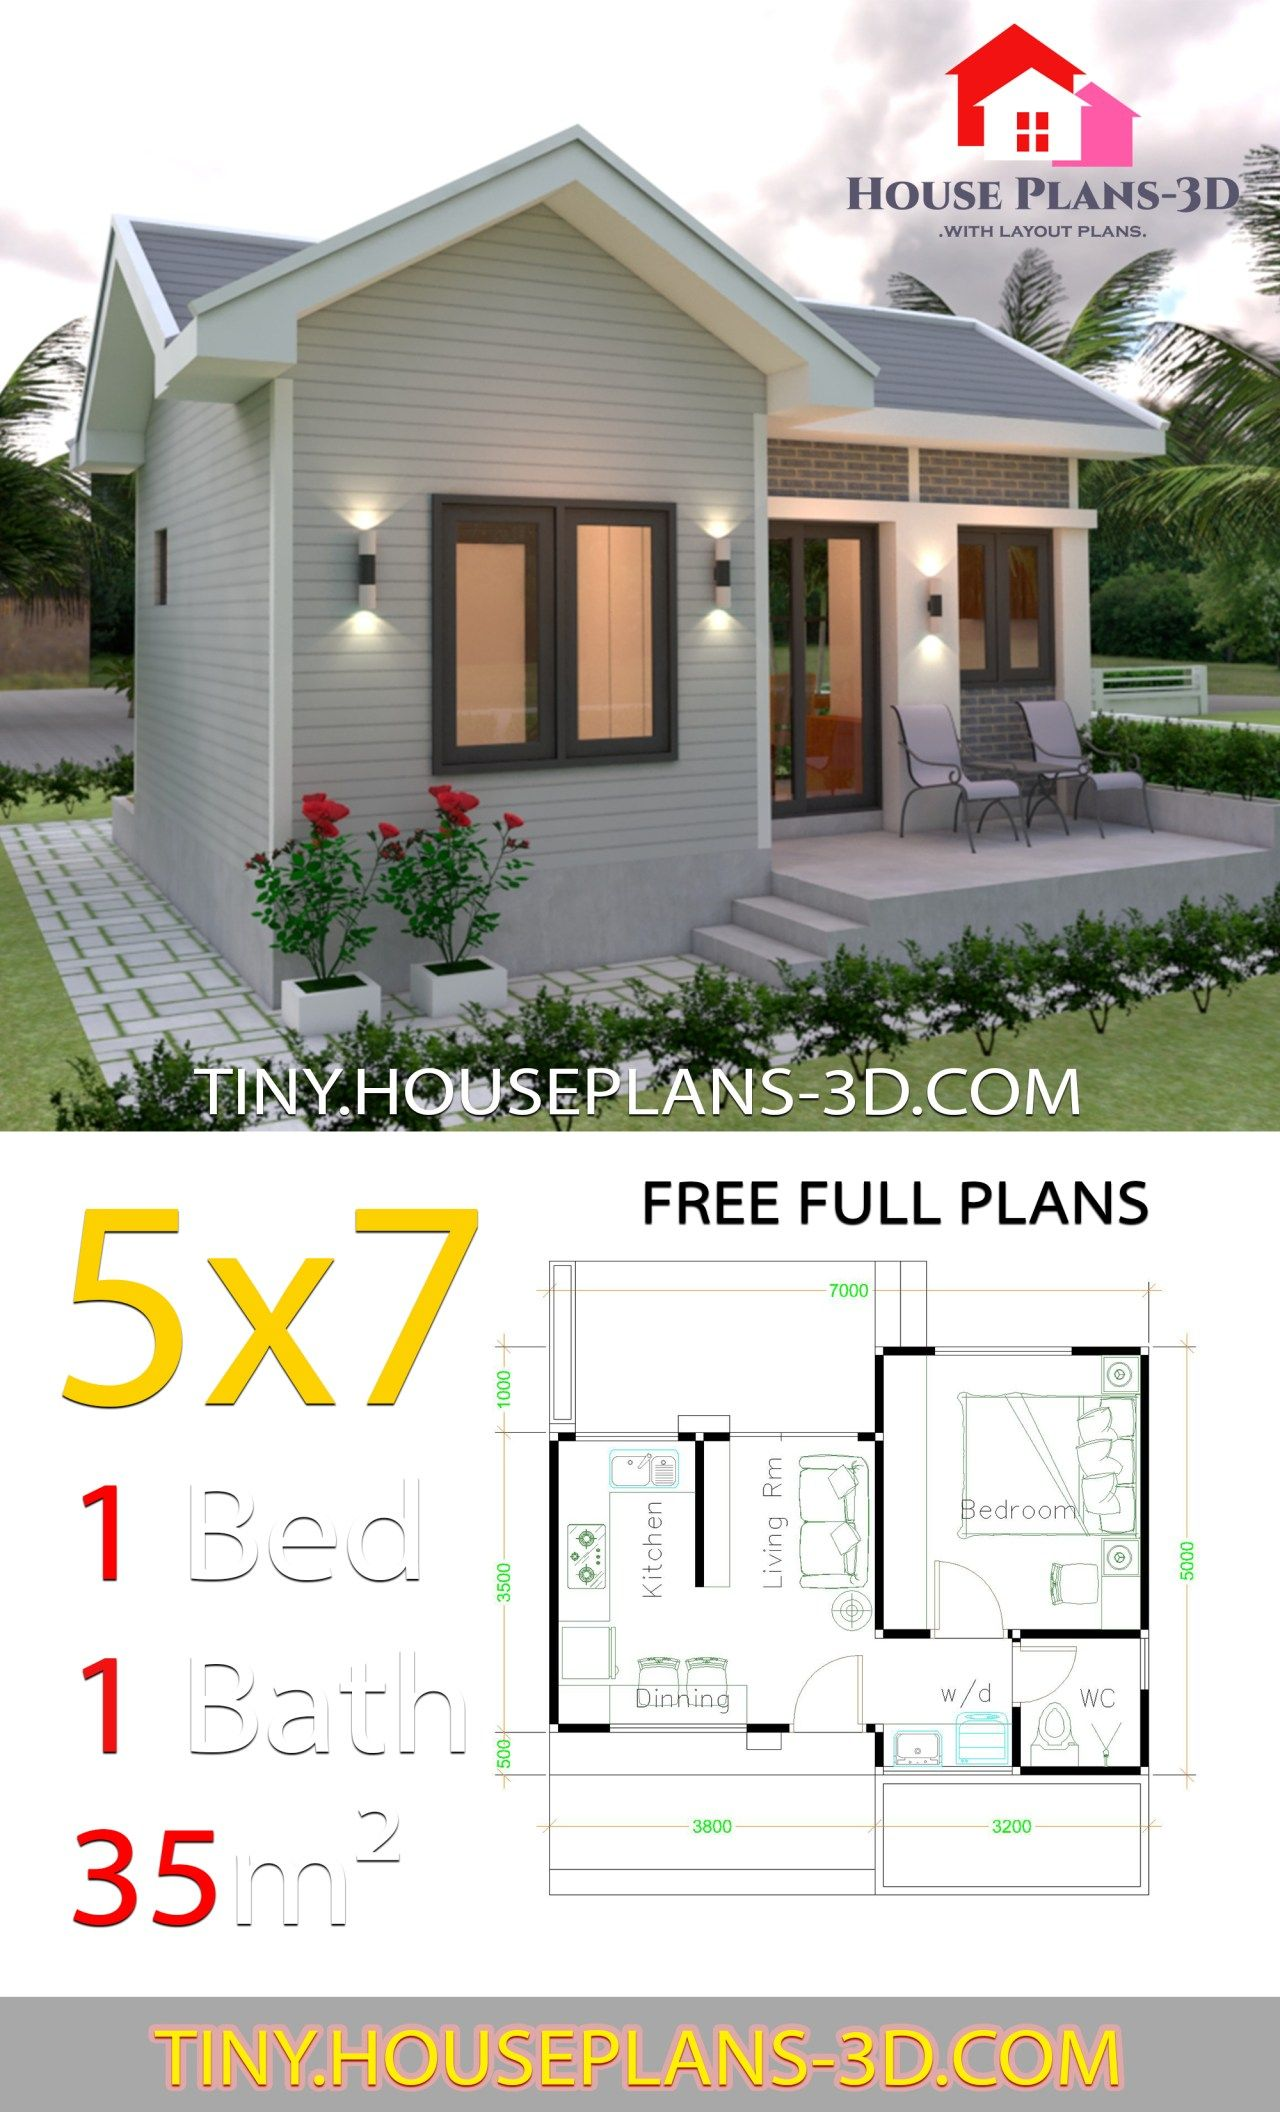 Small House Design Plans 5x7 With One Bedroom Gable Roof Tiny House Plans Guest House Plans One Bedroom House Plans Small House Design Plans